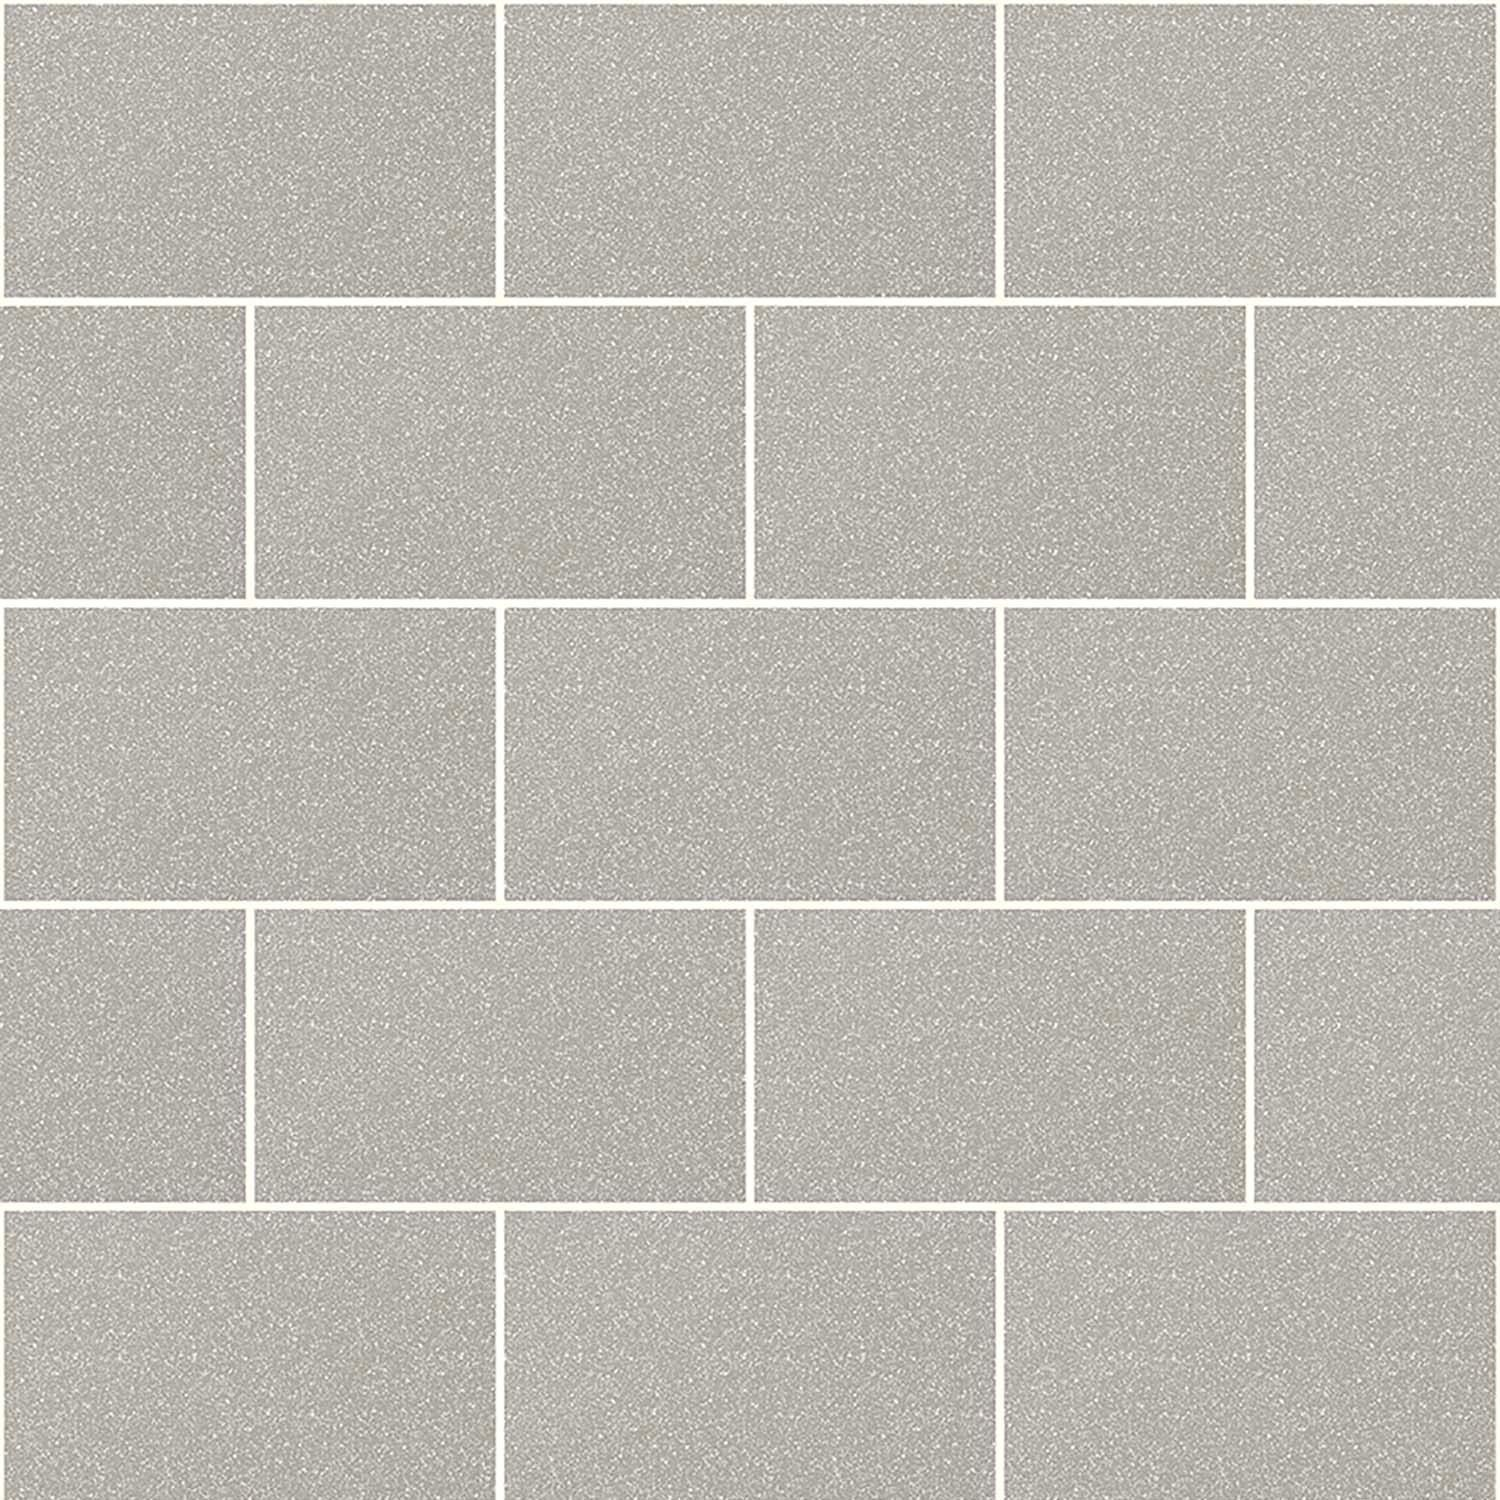 tile effect kitchen wallpaper brick effect wallpaper kitchen bathroom vinyl glitter 6134